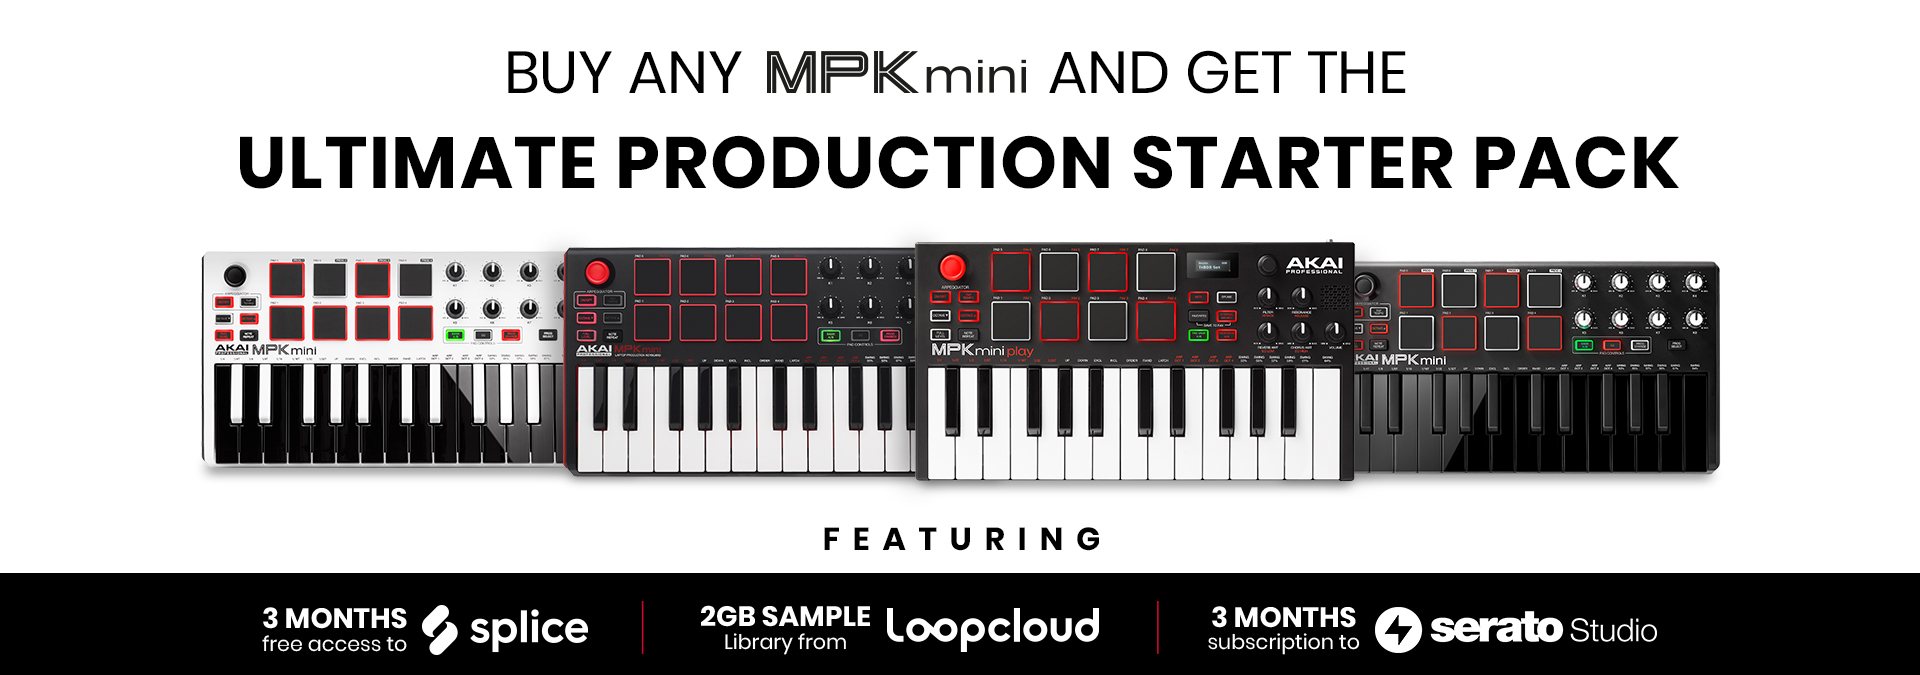 MPK Mini Ultimate Production Promo